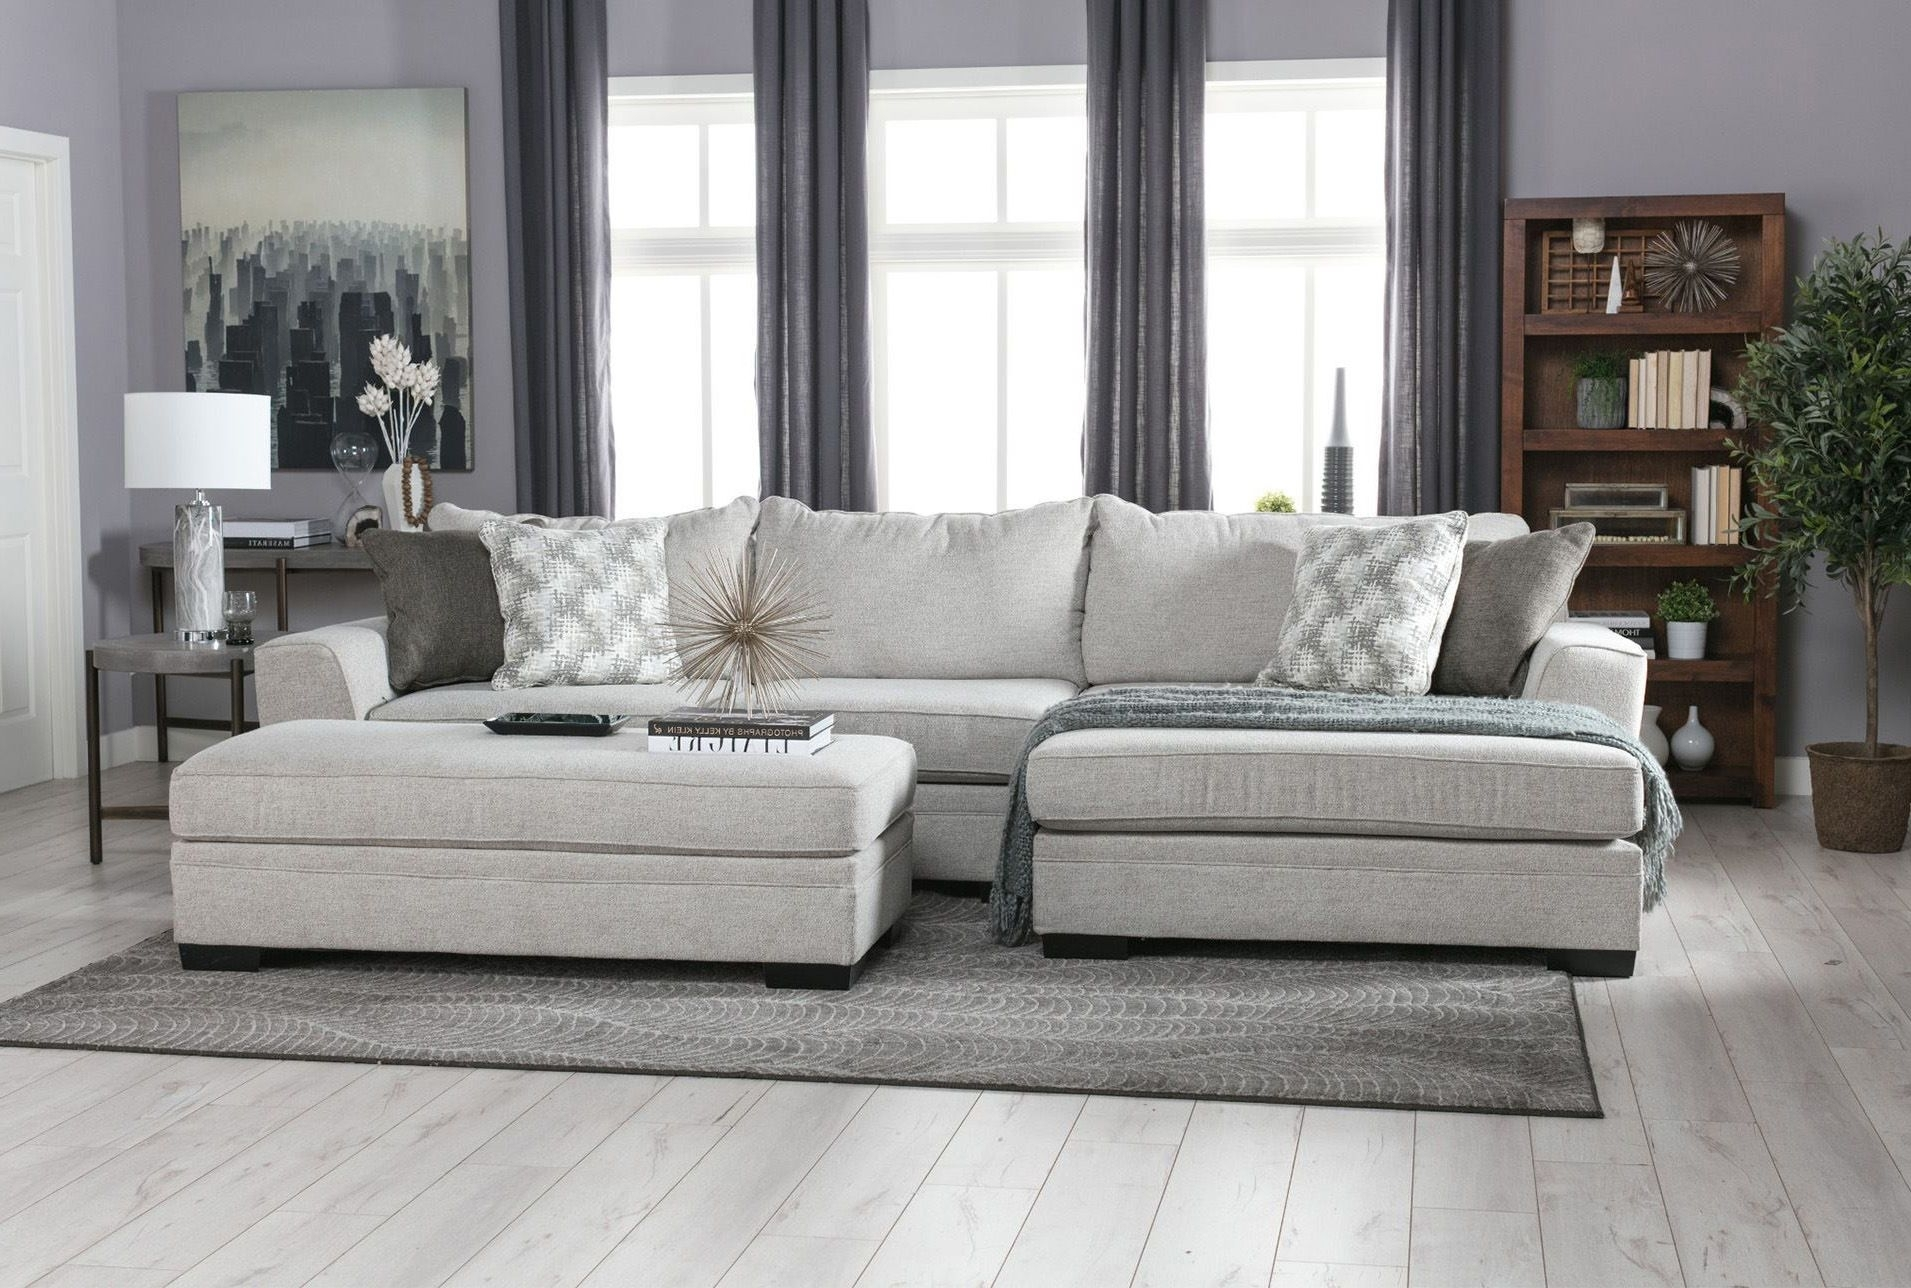 Delano 2 Piece Sectional W/raf Oversized Chaise | Living Room Ideas for Delano 2 Piece Sectionals With Laf Oversized Chaise (Image 15 of 30)